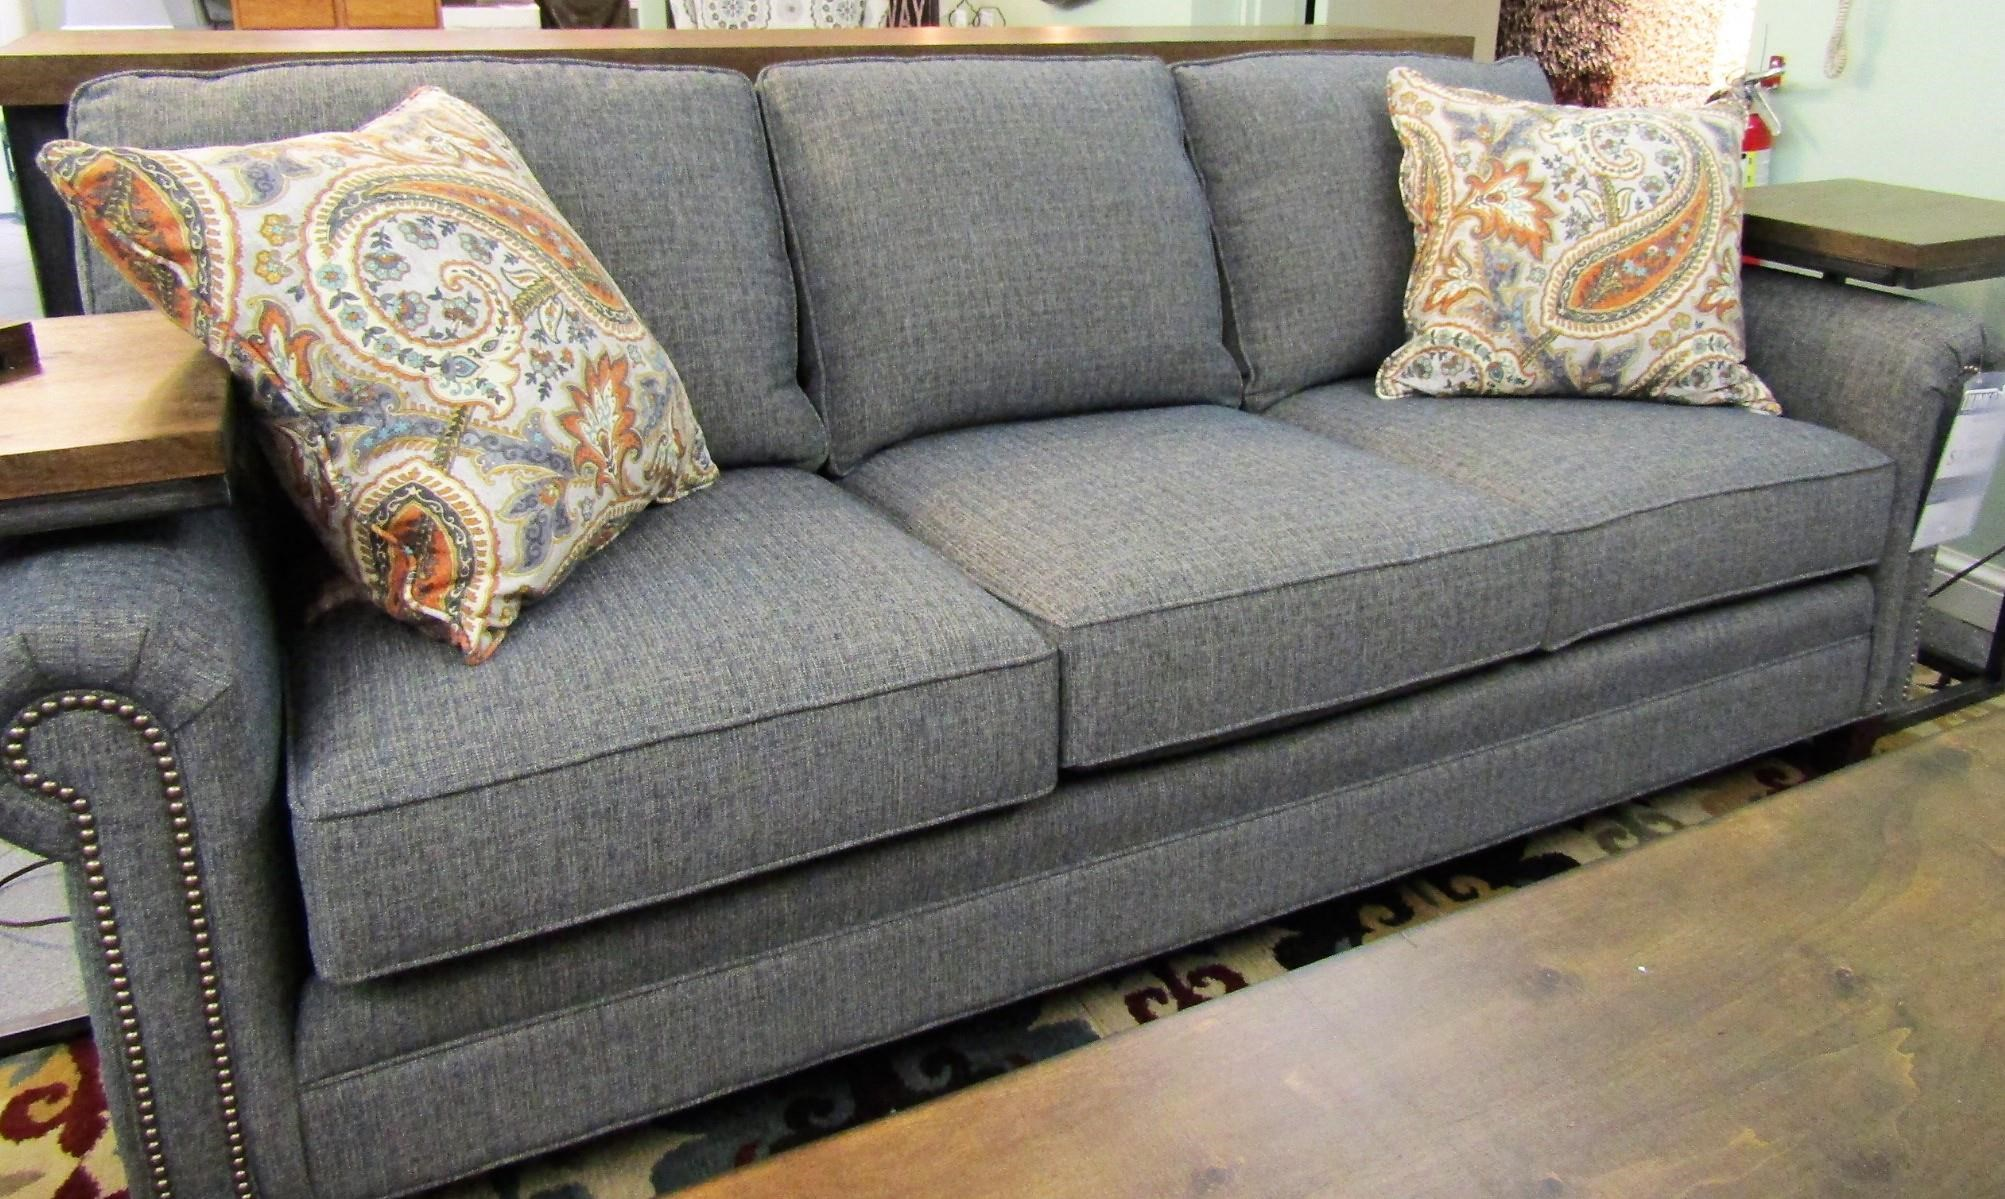 395 Style Group Sofa by Smith Brothers at O'Dunk & O'Bright Furniture